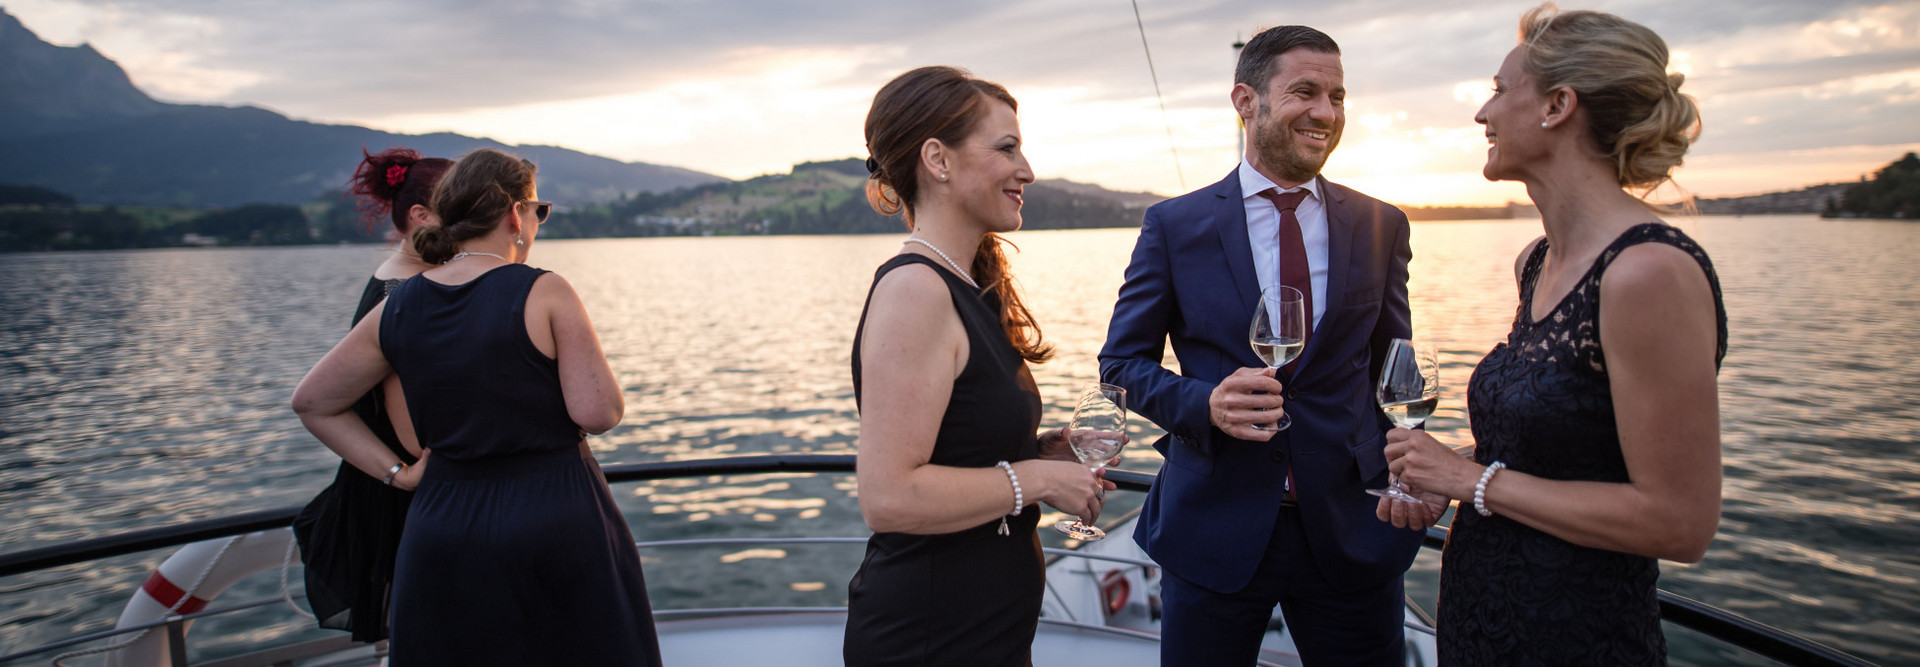 Guests of a company event during an aperitif on Lake Lucerne.